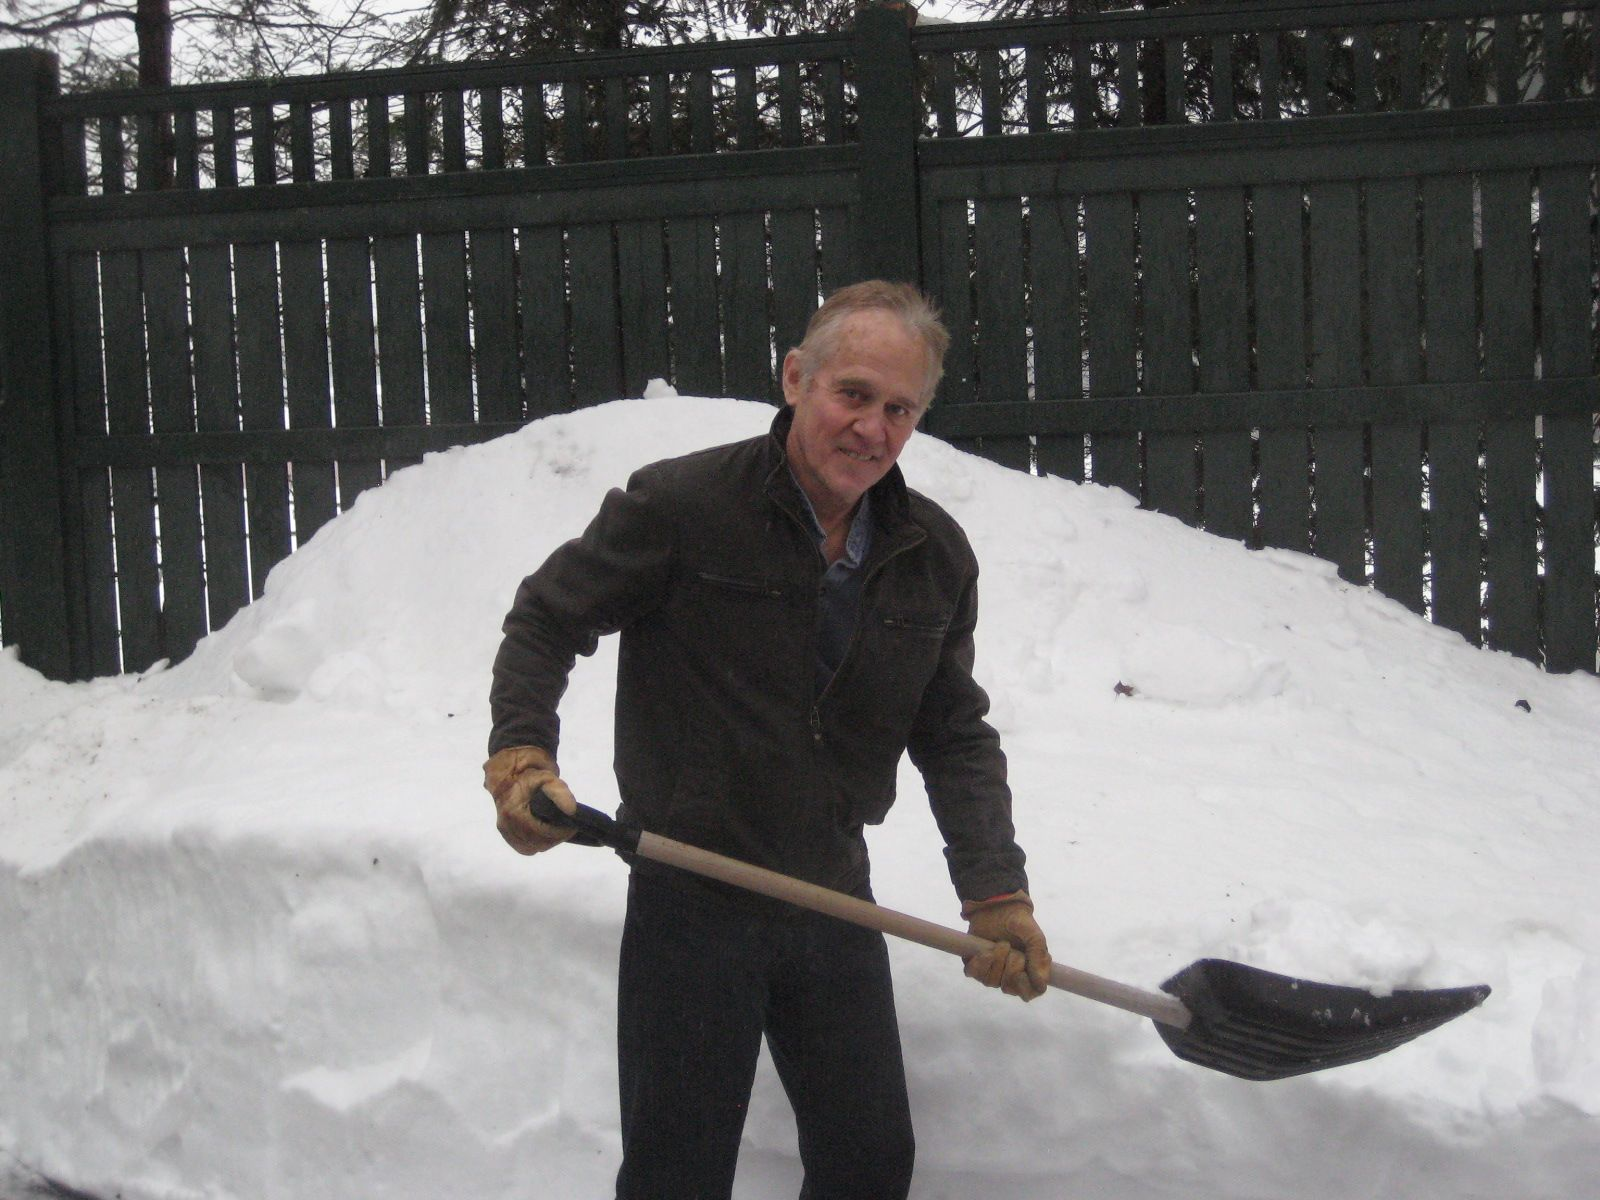 A visit with Reg Howe '58 at his home in Belmont after the Blizzard of 2013.